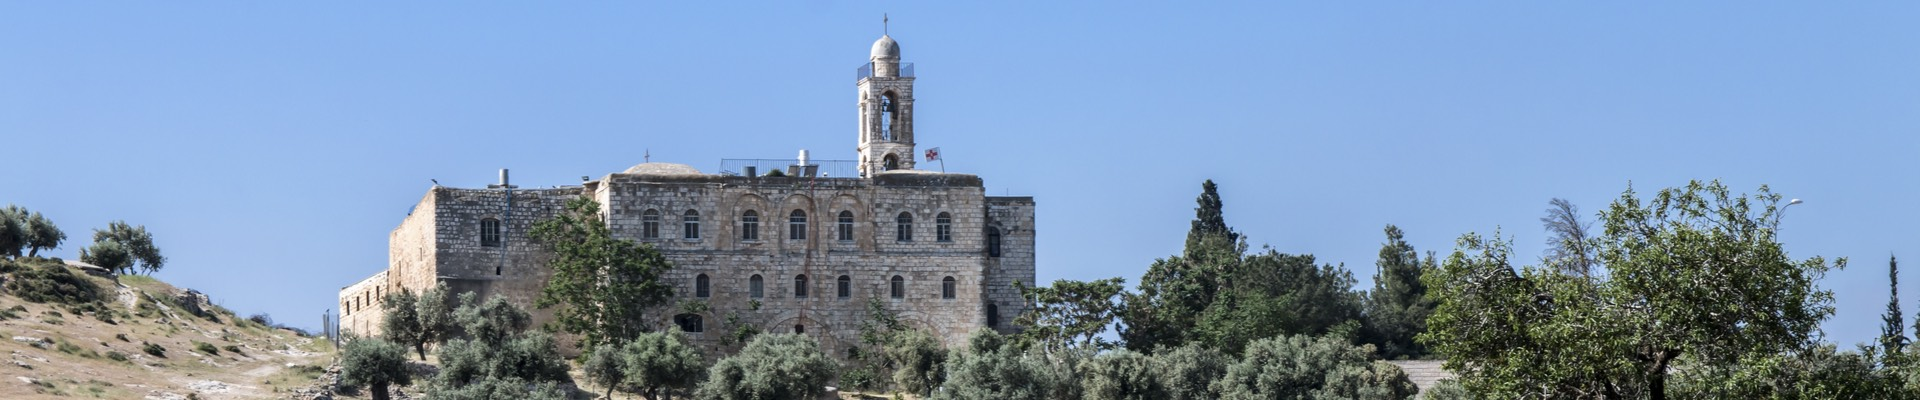 11 Day In-depth Catholic Holy Land Pilgrimage